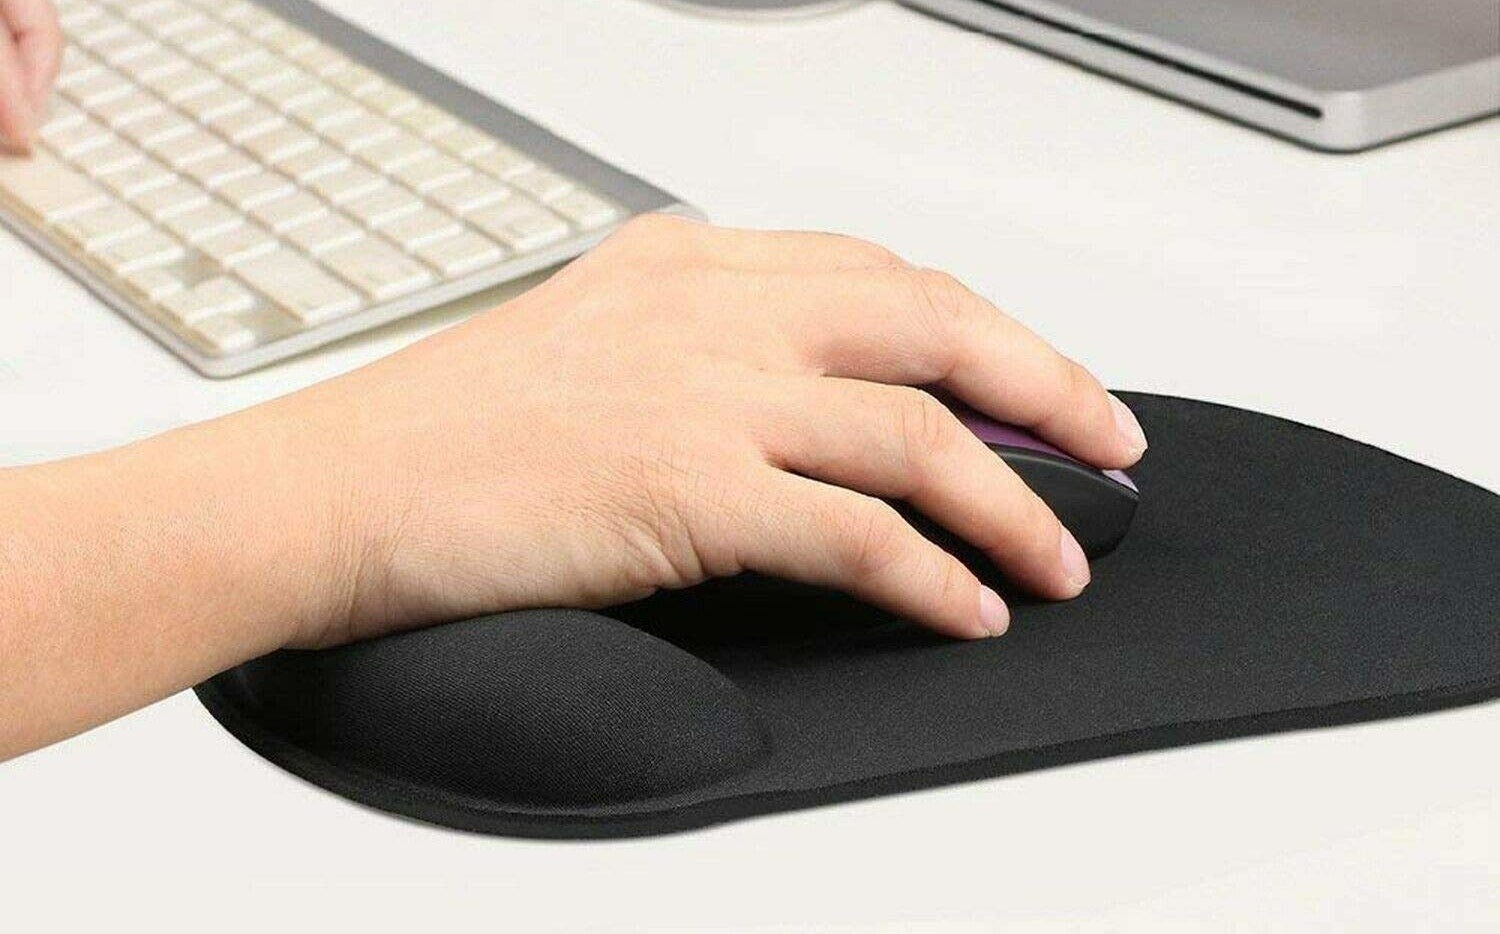 A person using a mouse on an ergonomic pad next to a keyboard